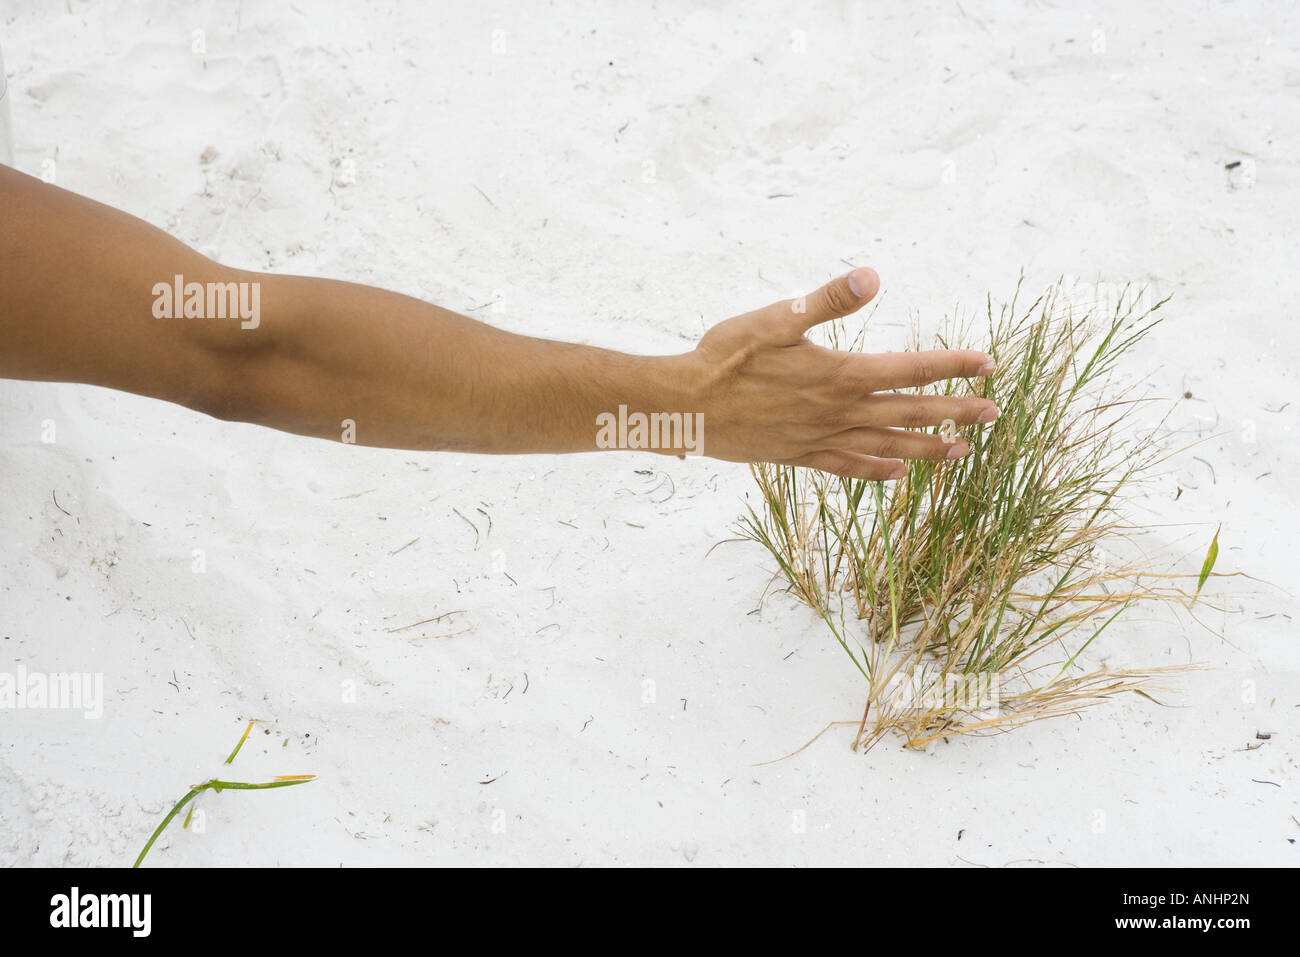 Man touching dune grass, cropped view of arm - Stock Image